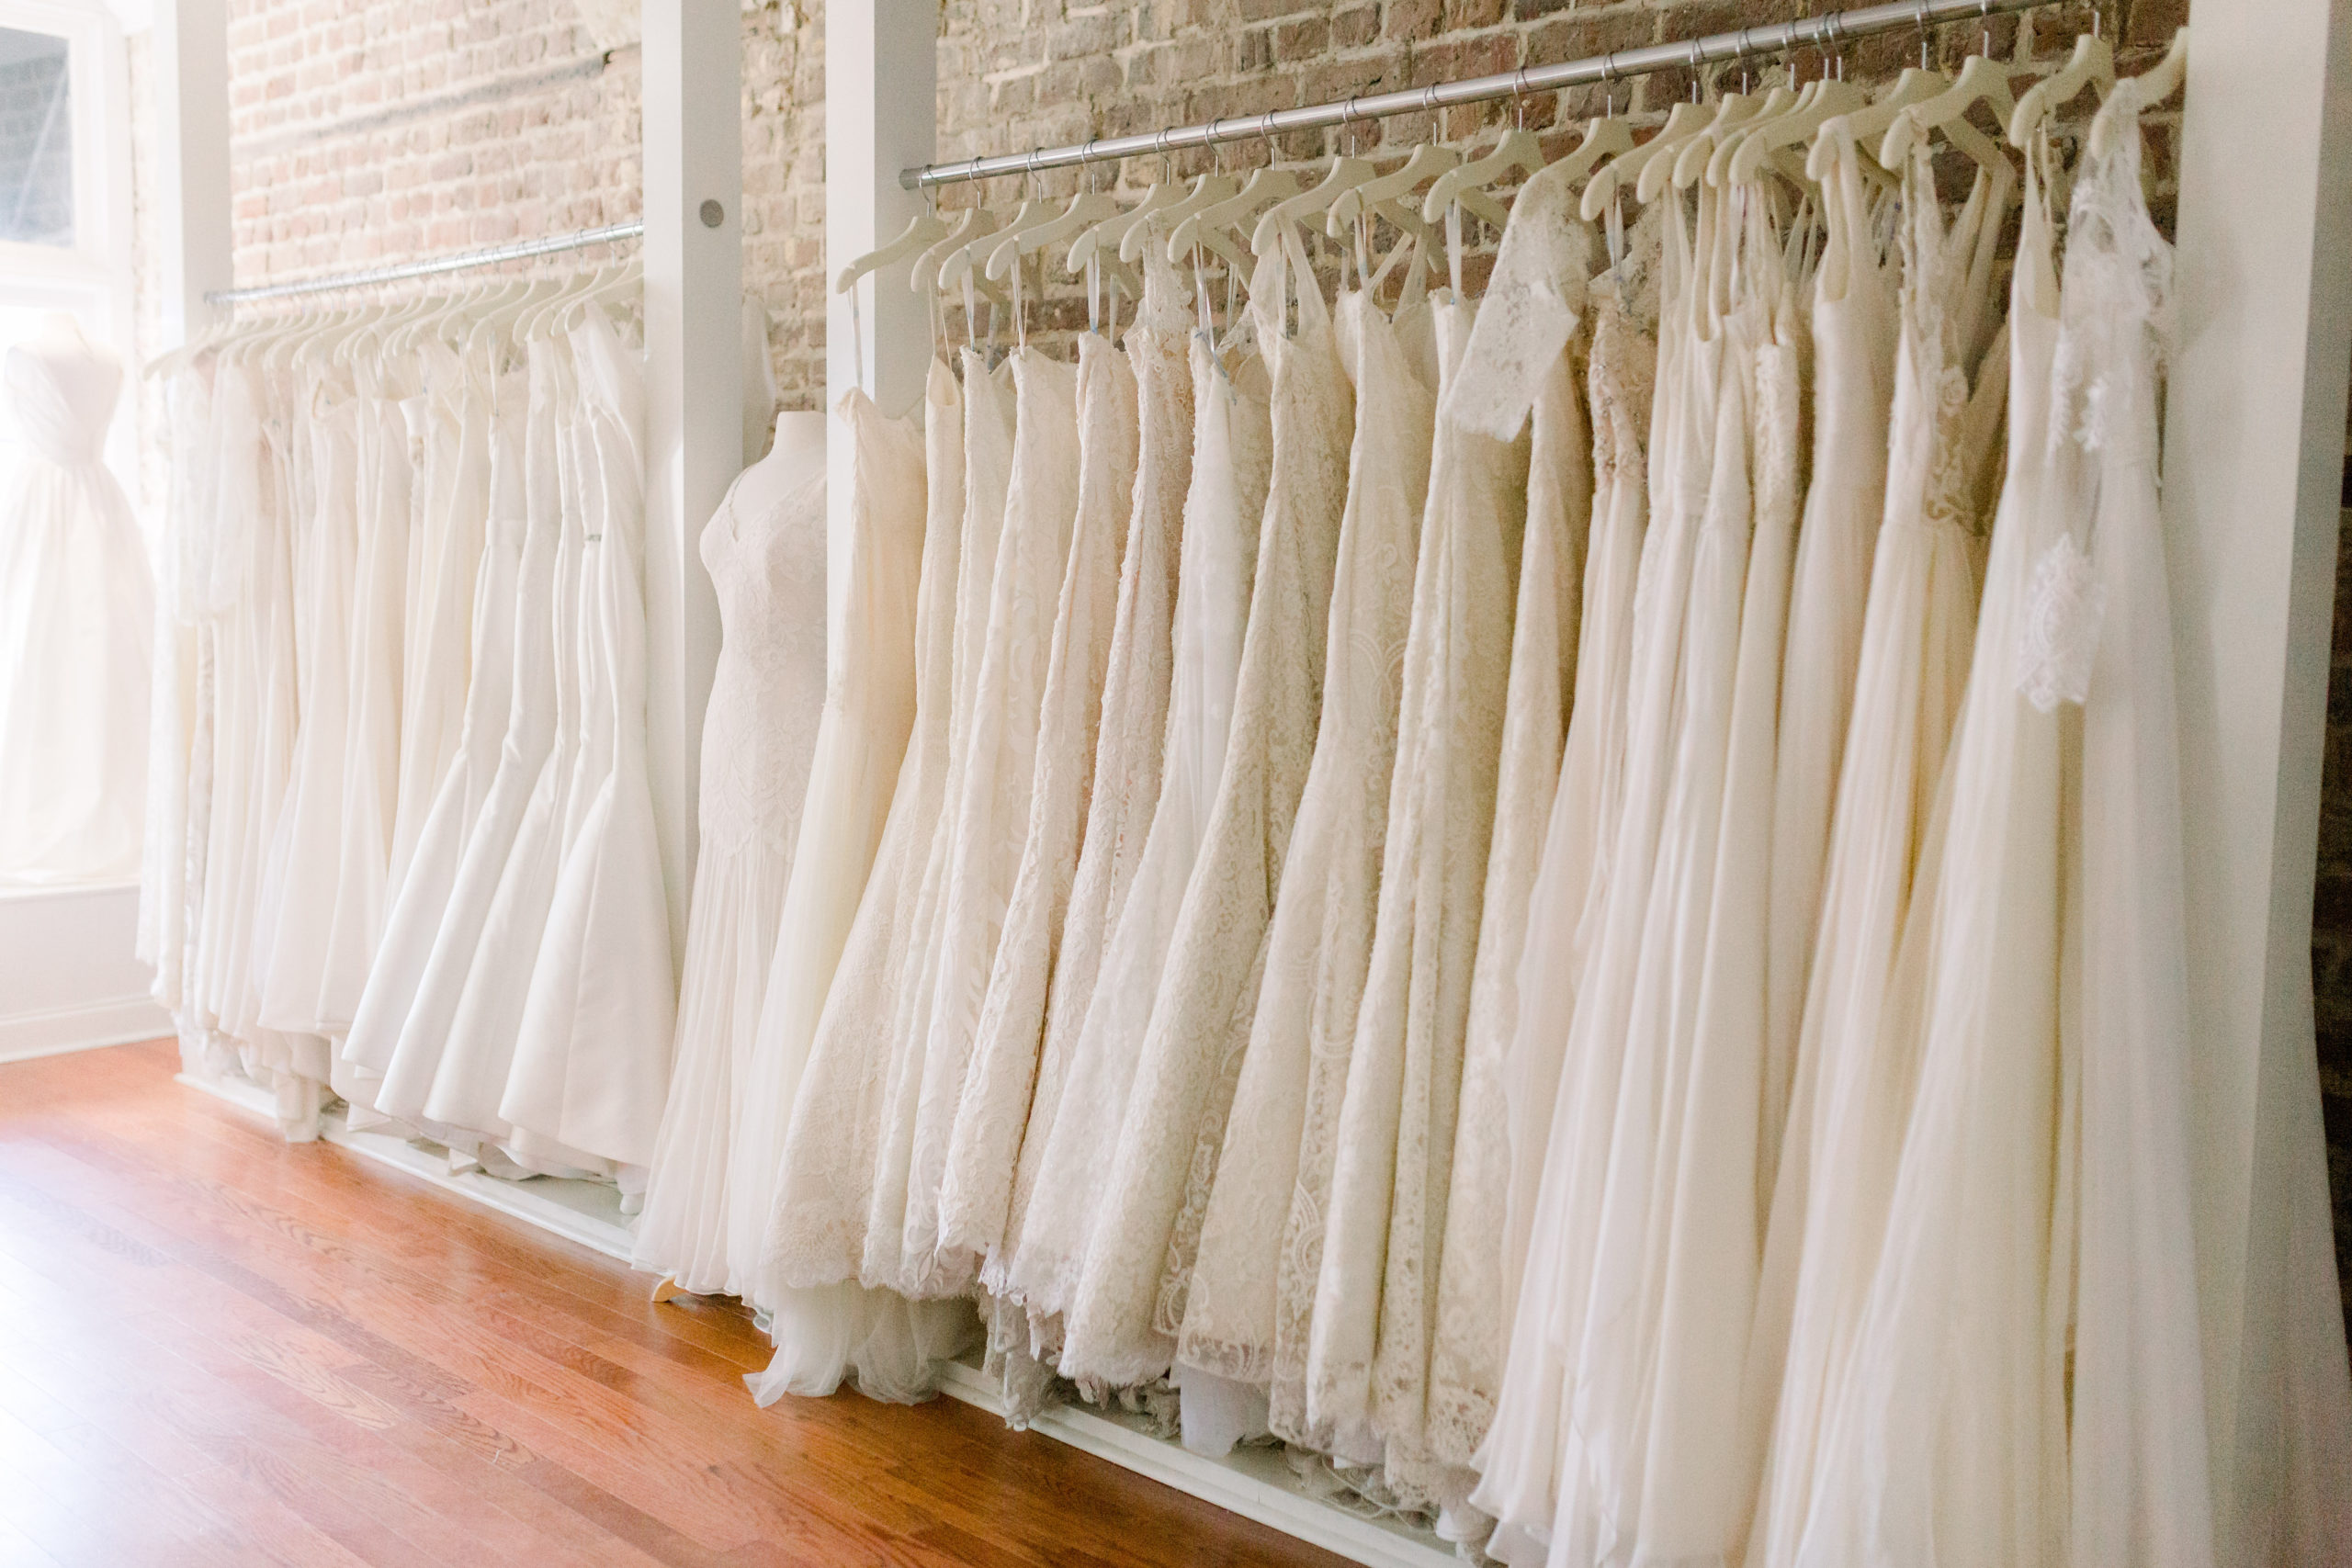 Made in the USA by Modern Trousseau.